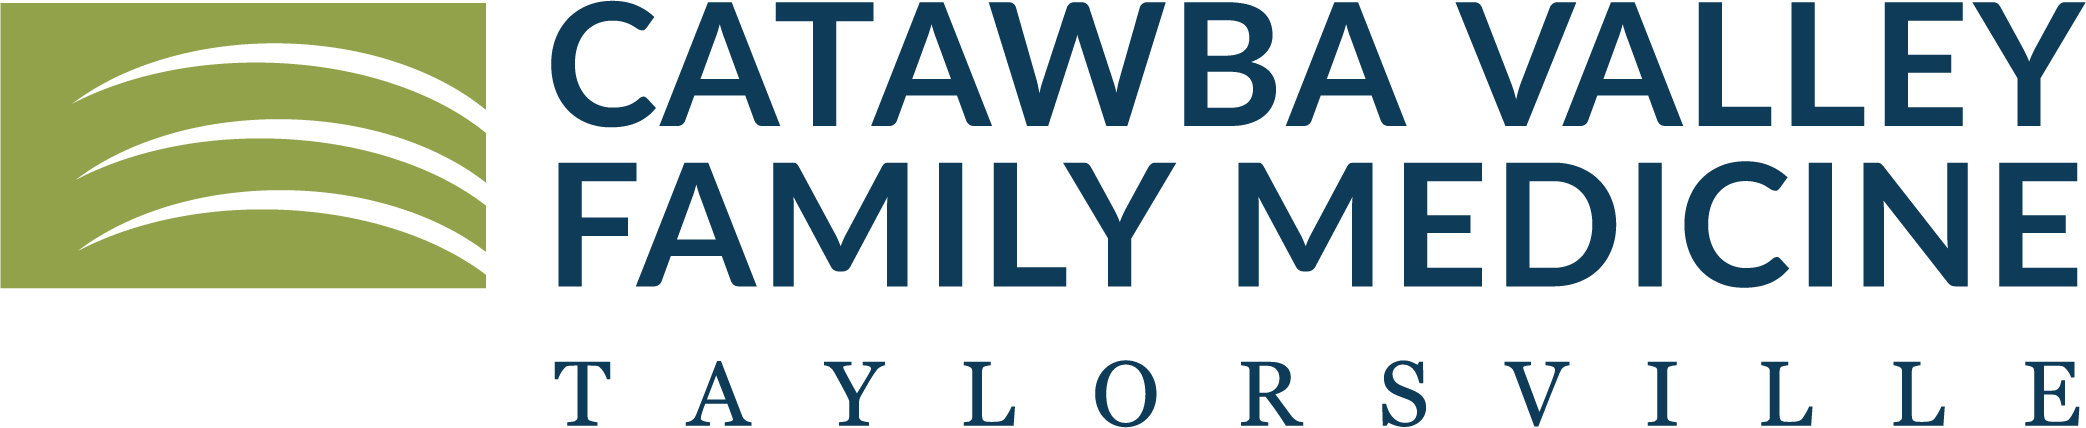 Catawba Valley Family Medicine - Taylorsville